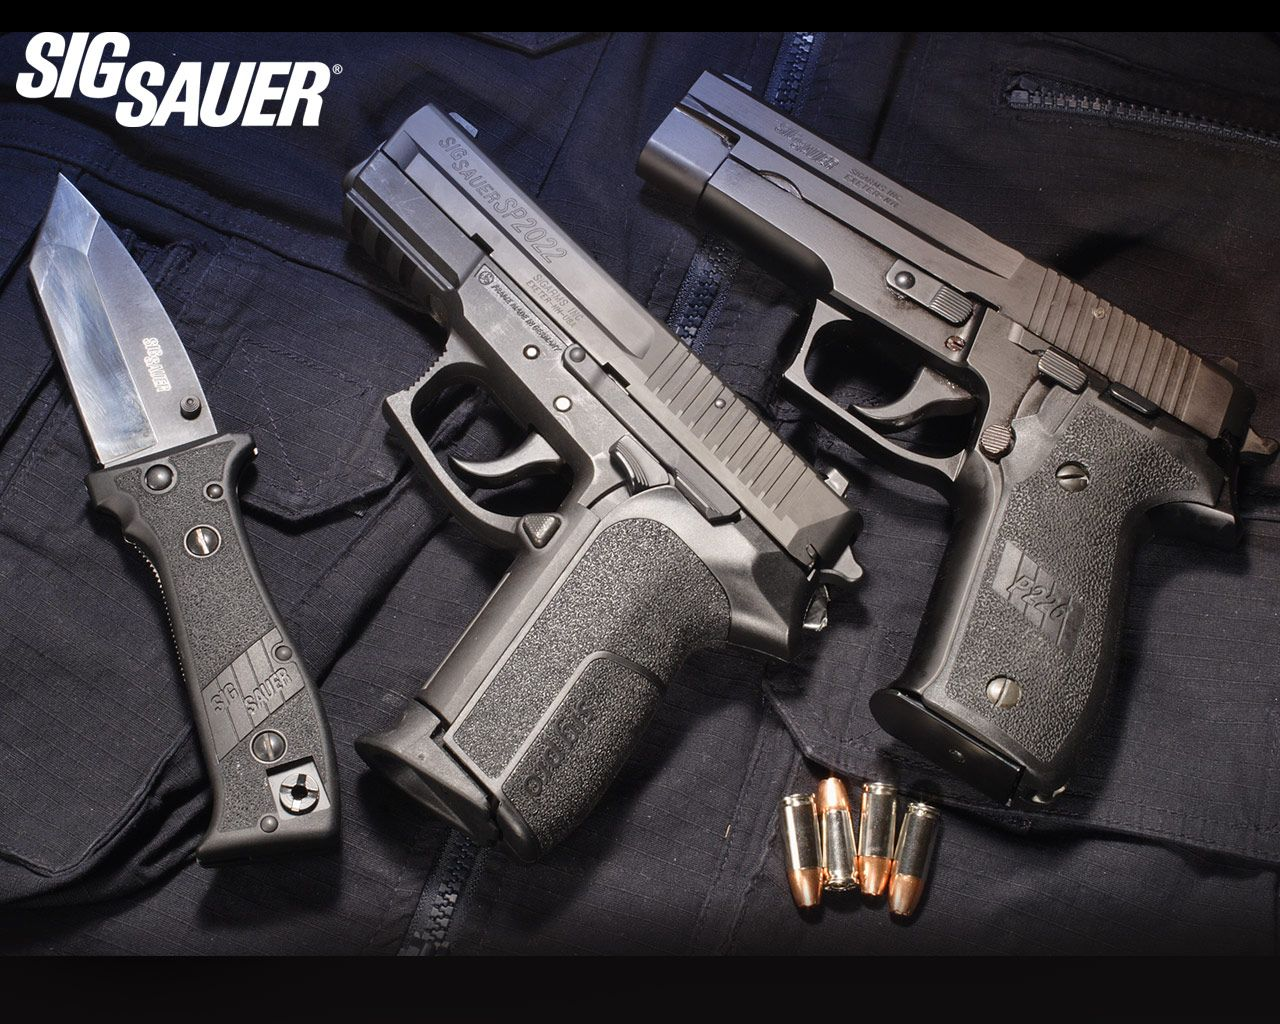 Wallpaper Pistols Sig Sauer P226 Army: Sig Sauer Knife, Sp2022, And P226